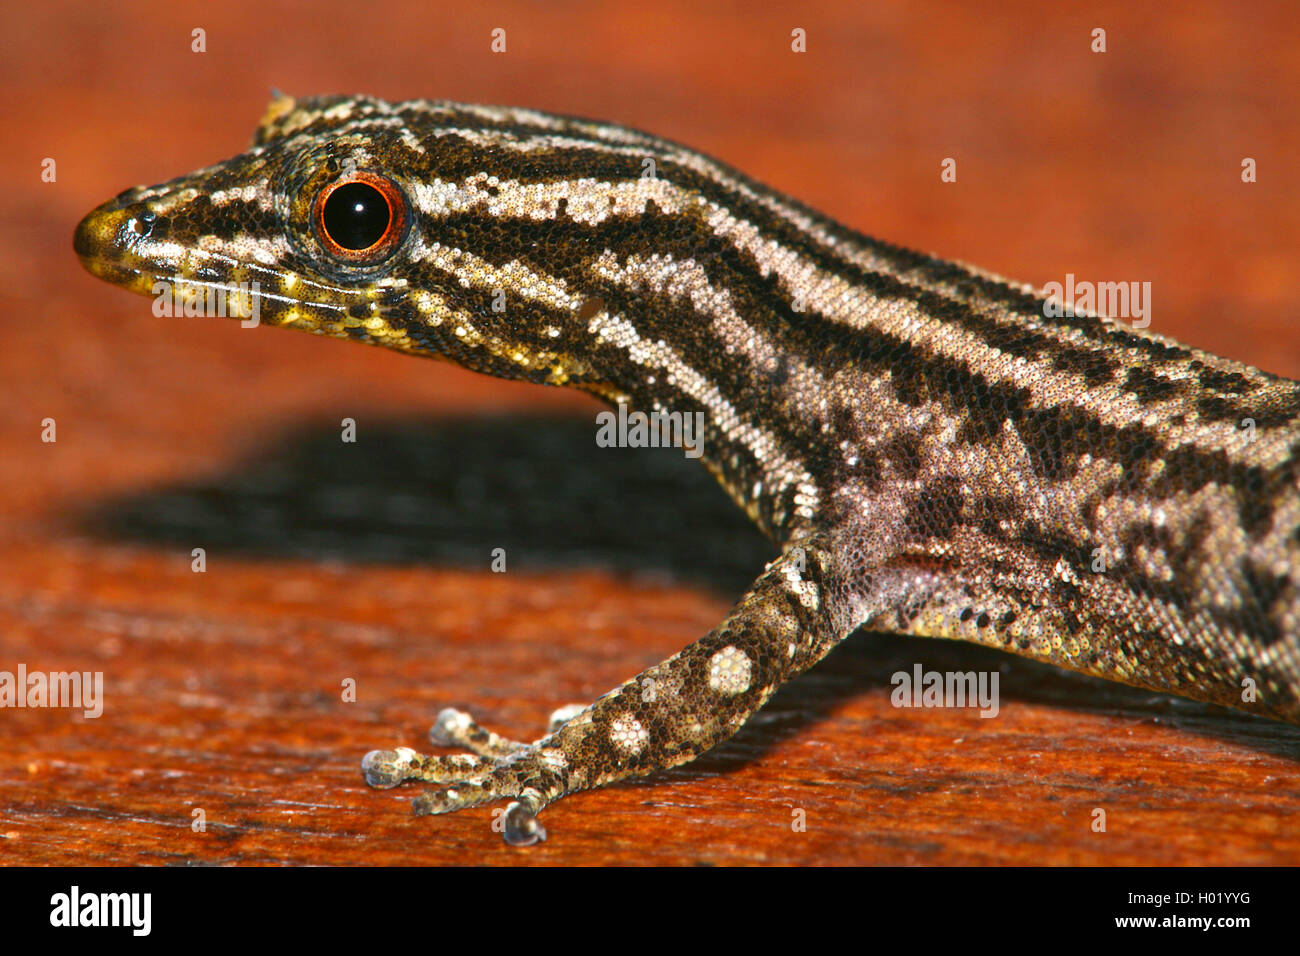 Marked-Throated graptolaemus Pigmy Gecko (Gecko), Portrait, Costa Rica Banque D'Images